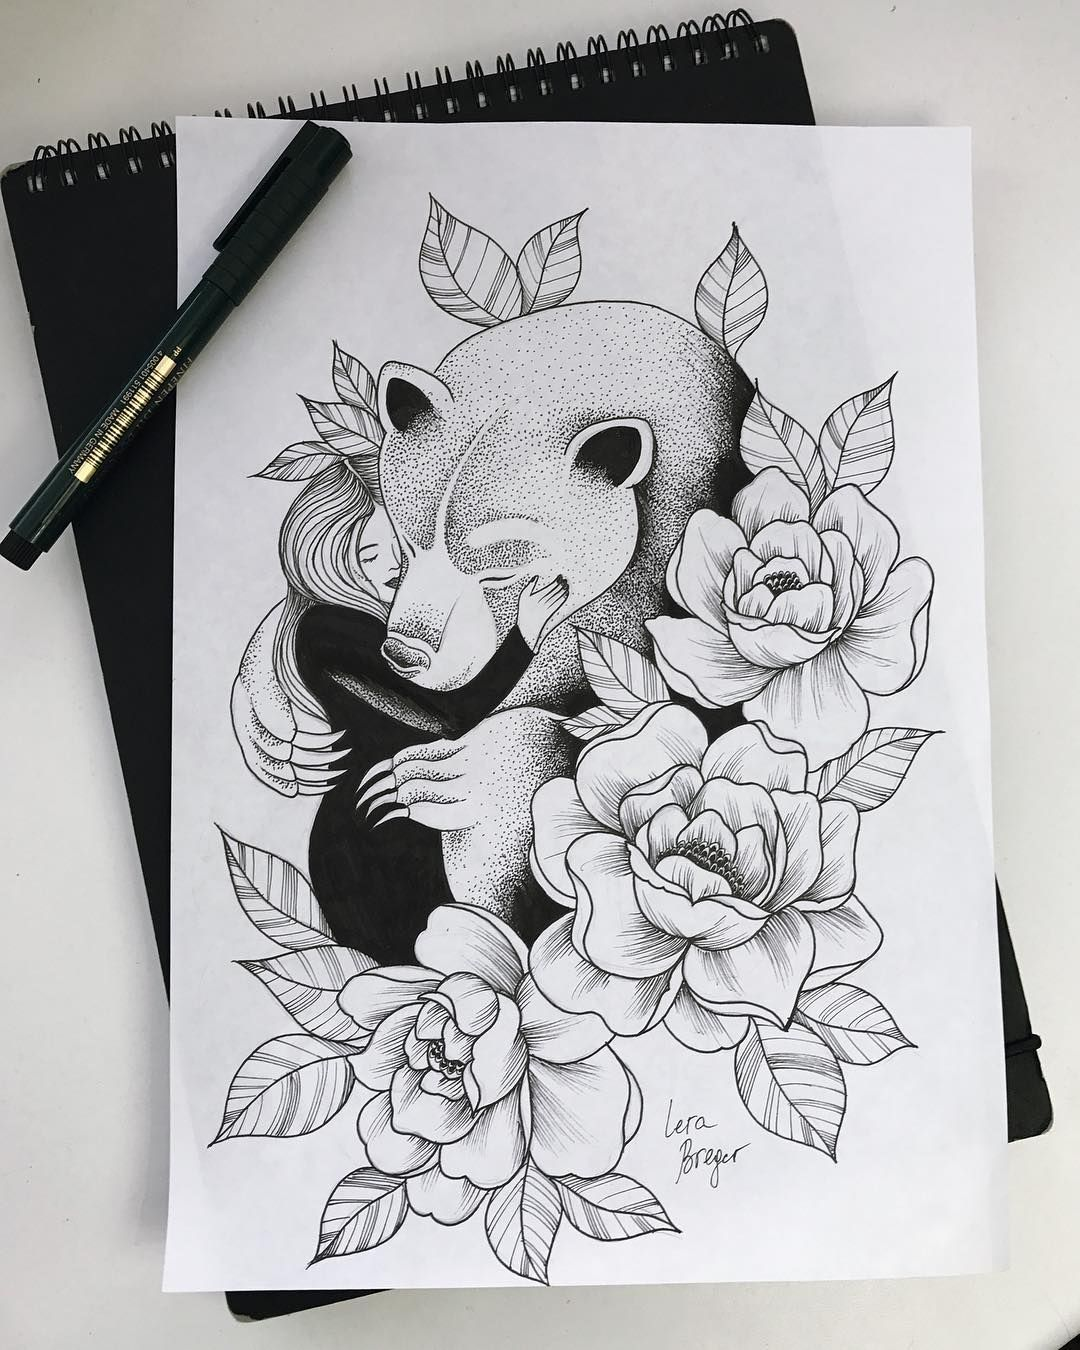 Tattoo Designs Sketches: Bear Tattoo Meaning And Symbolism - THE WILD TATTOO